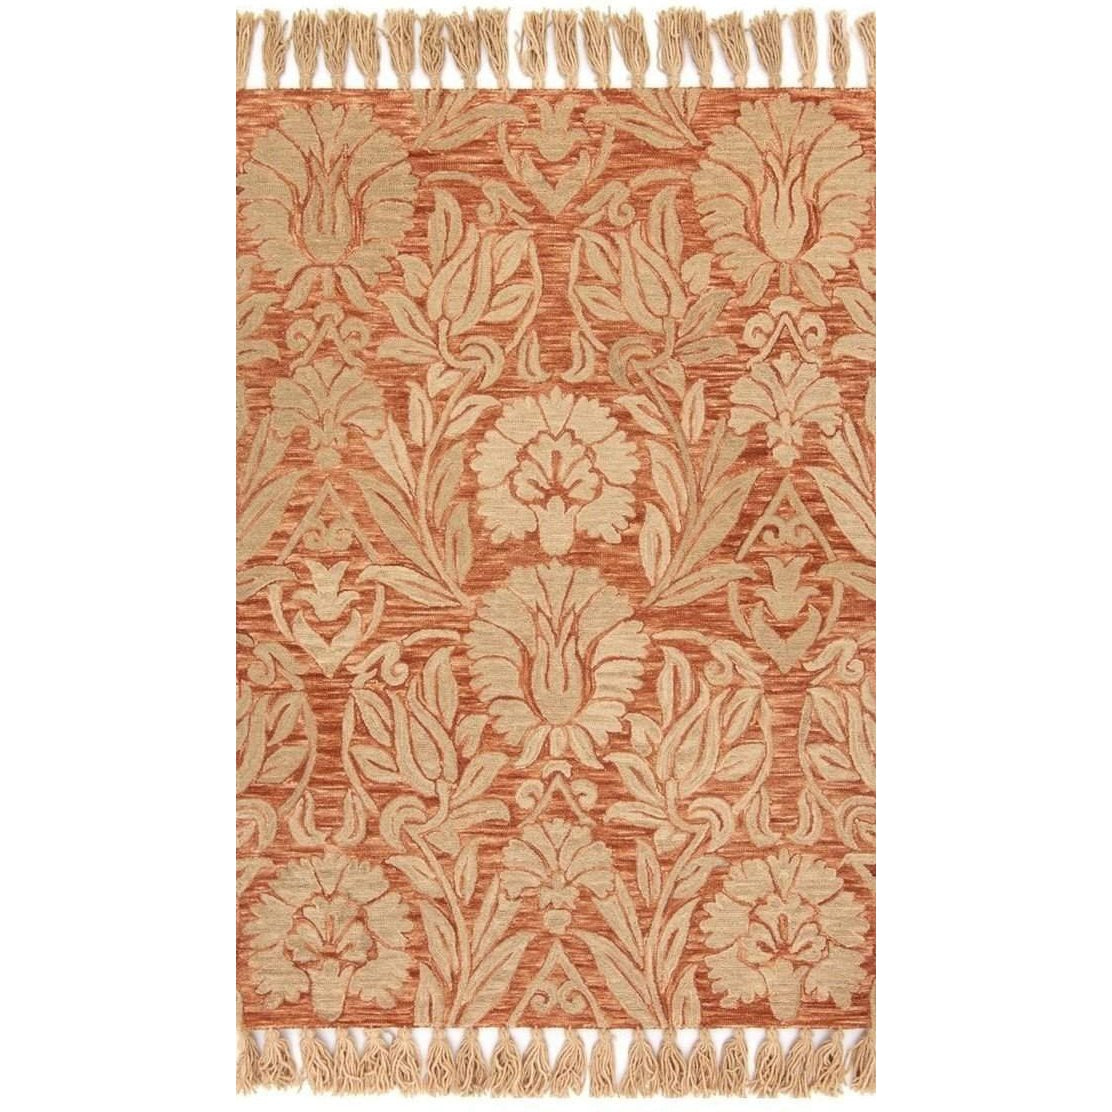 Joanna Gaines Jozie Day Rug Collection - JG-01 PERSIMMON